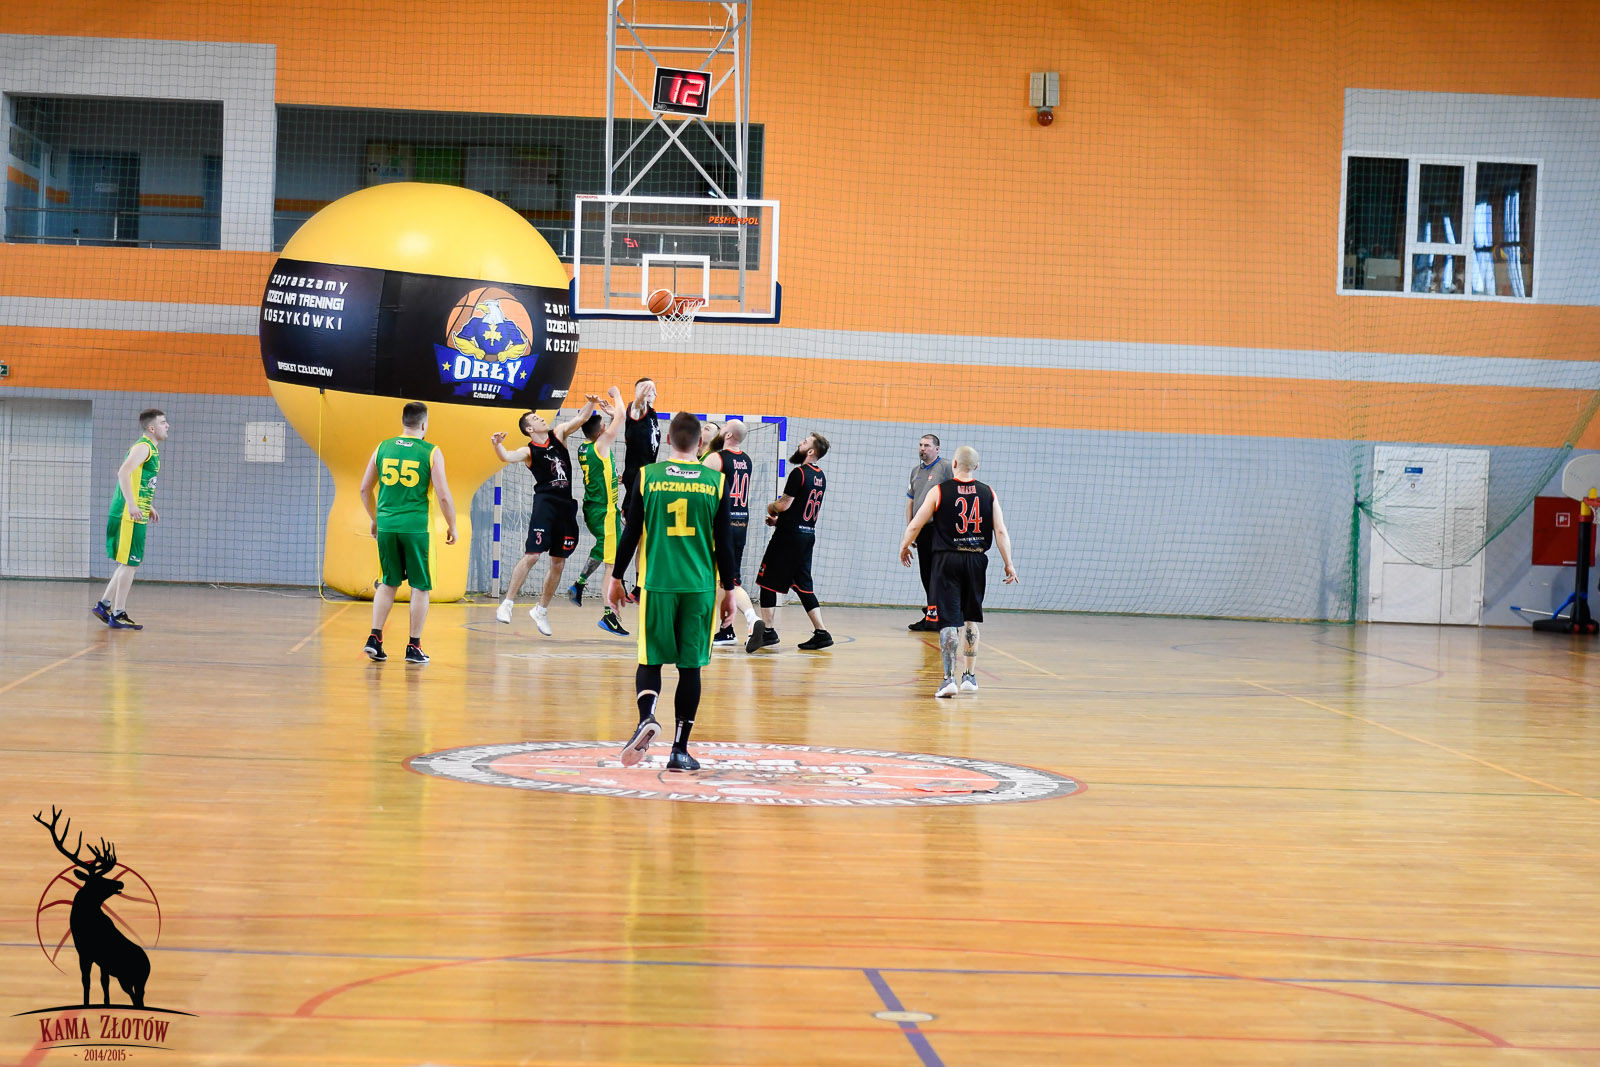 2020-02-16-play-off-overtime-3604